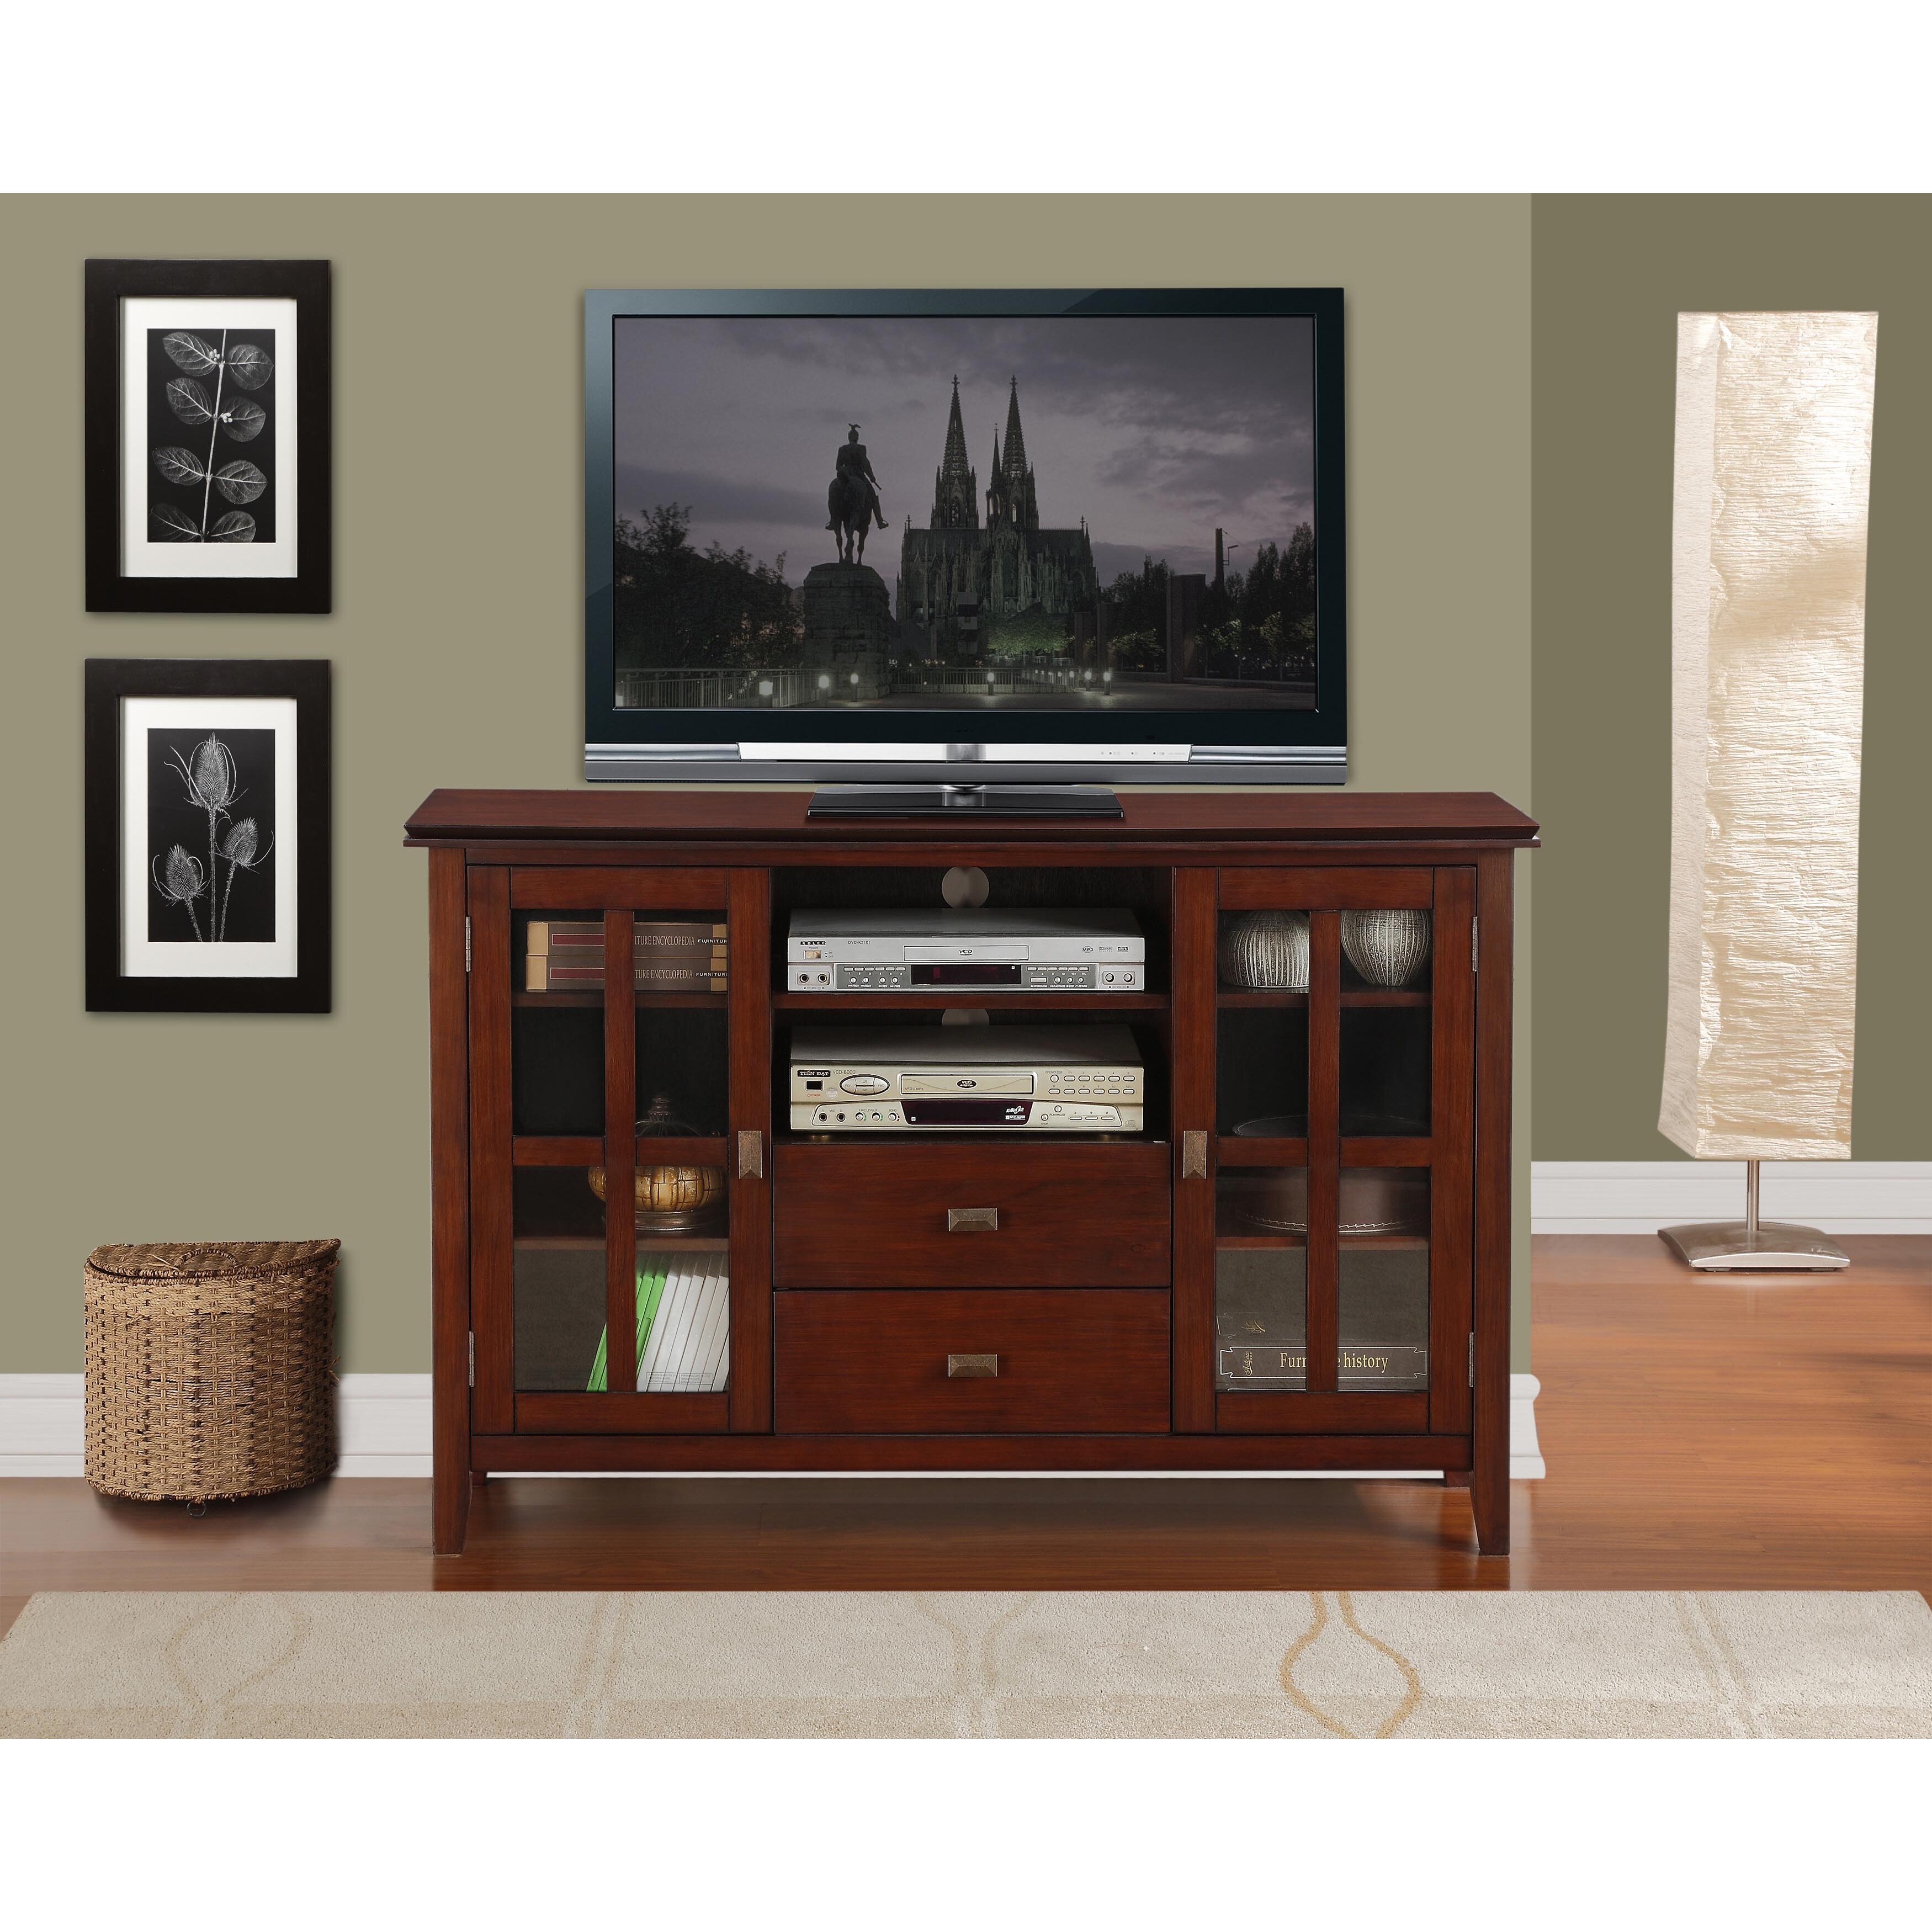 TV Stands for 55 59 Inch TVs You39ll Love Wayfair